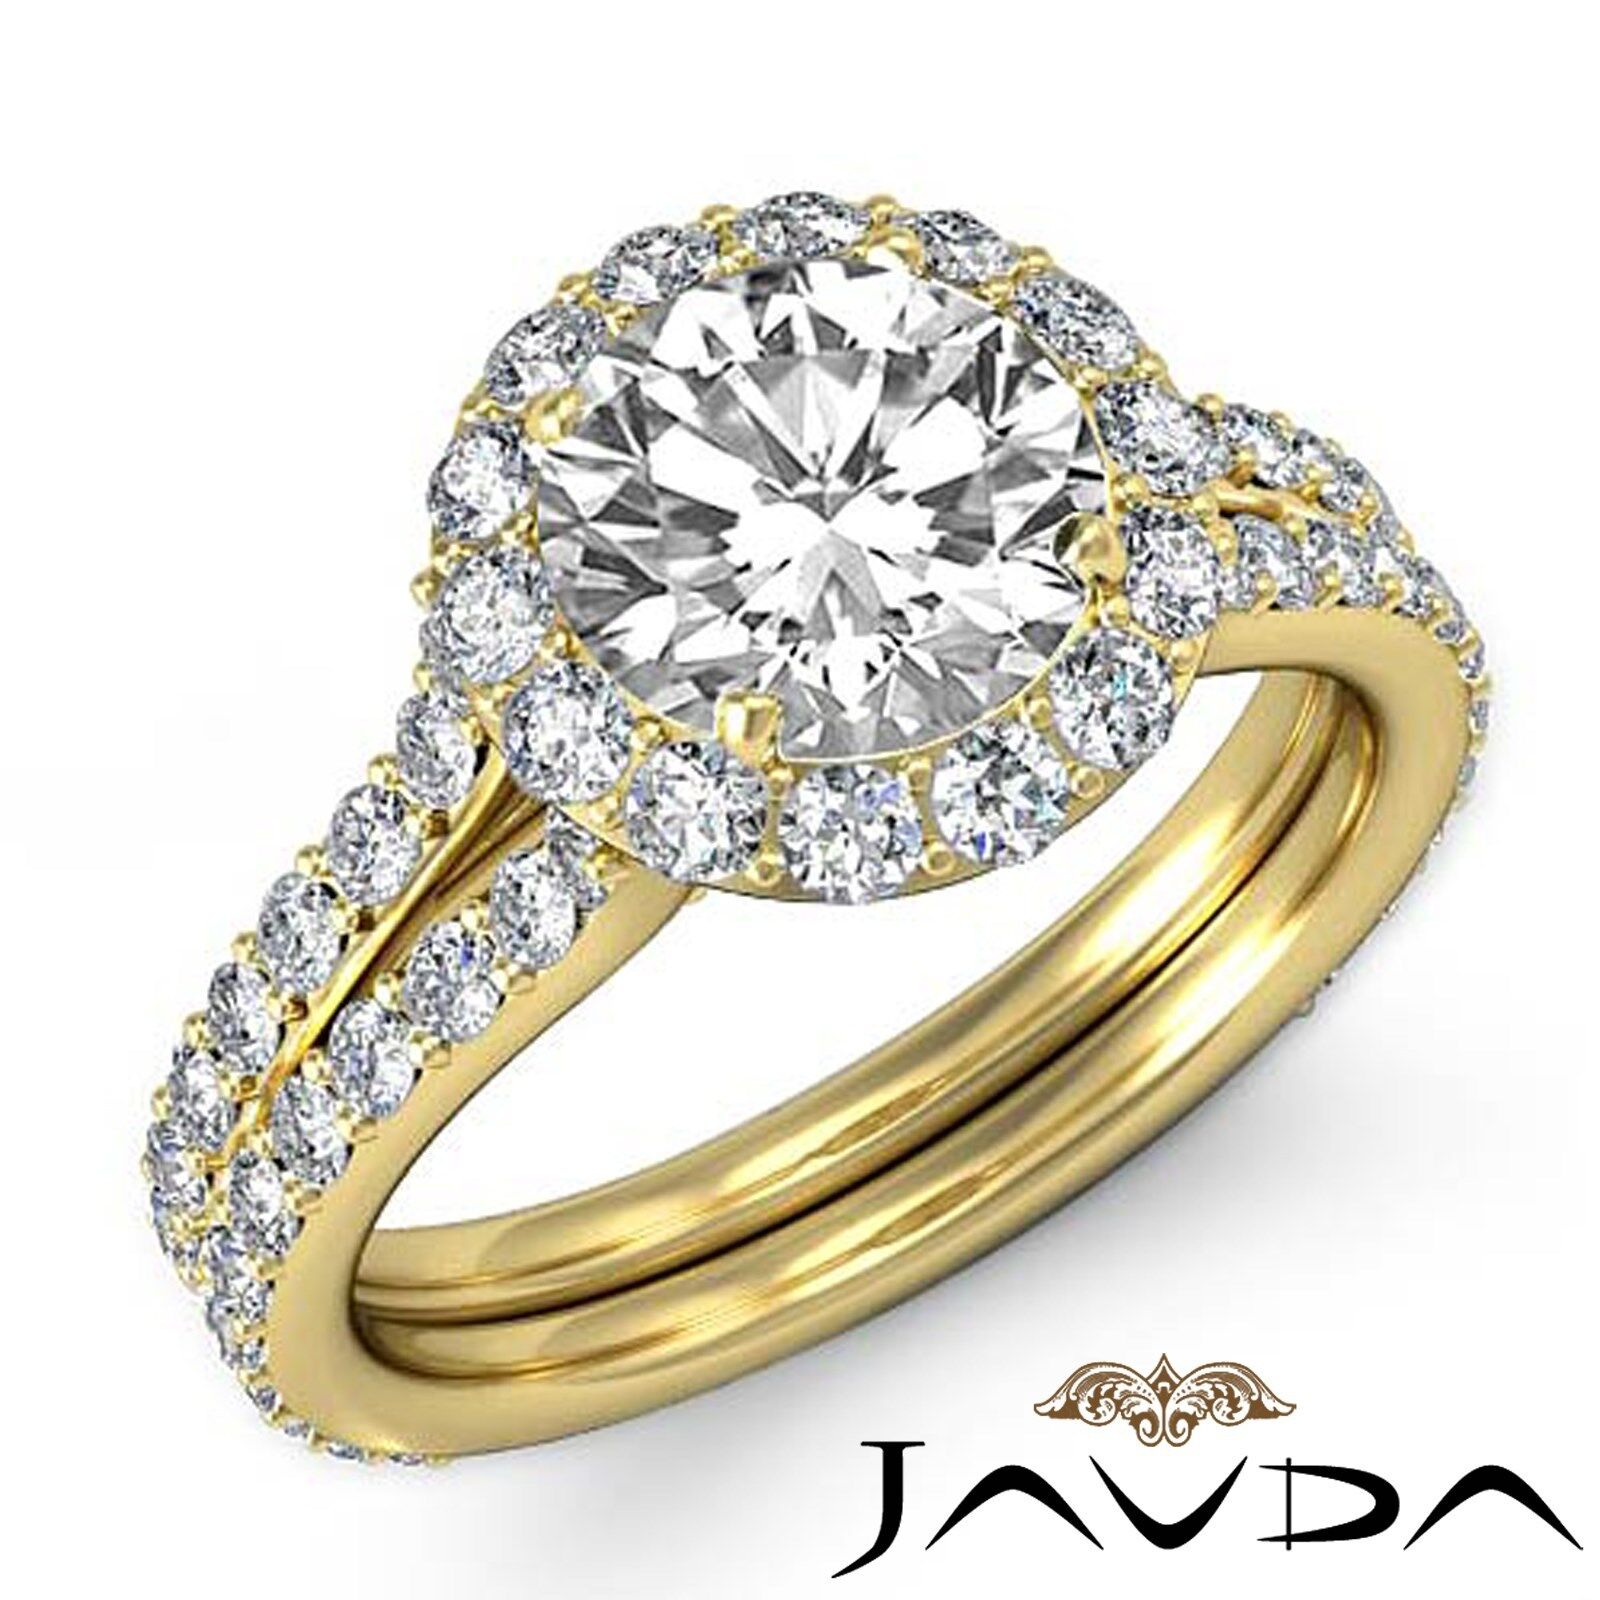 Halo Micro Pave Round Natural Diamond Engagement Ring GIA Certified I SI1 2.8 Ct